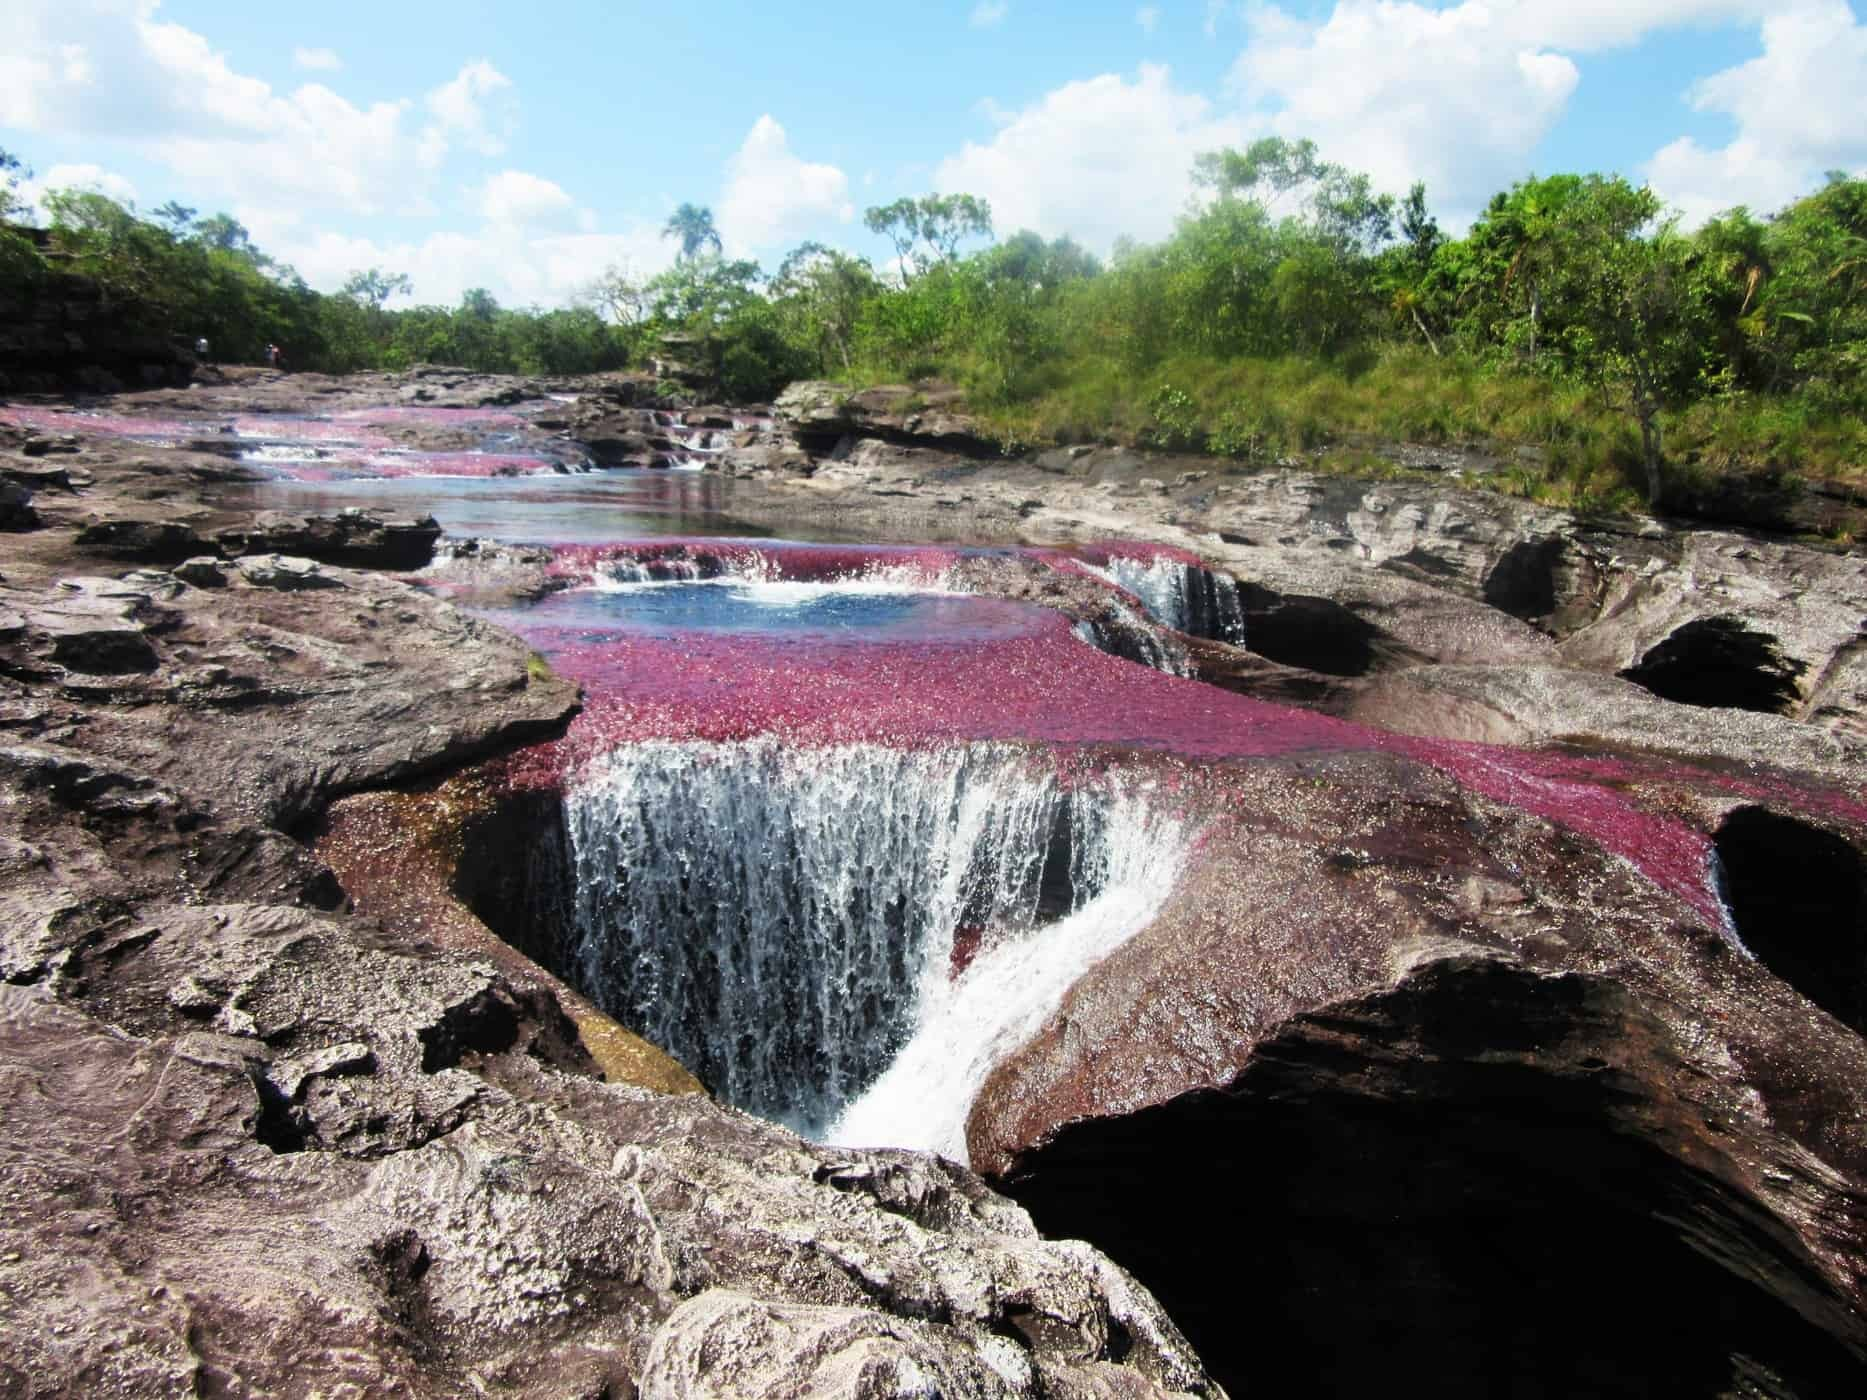 The river runs red - the amazing Caño Cristales River in Colombia.